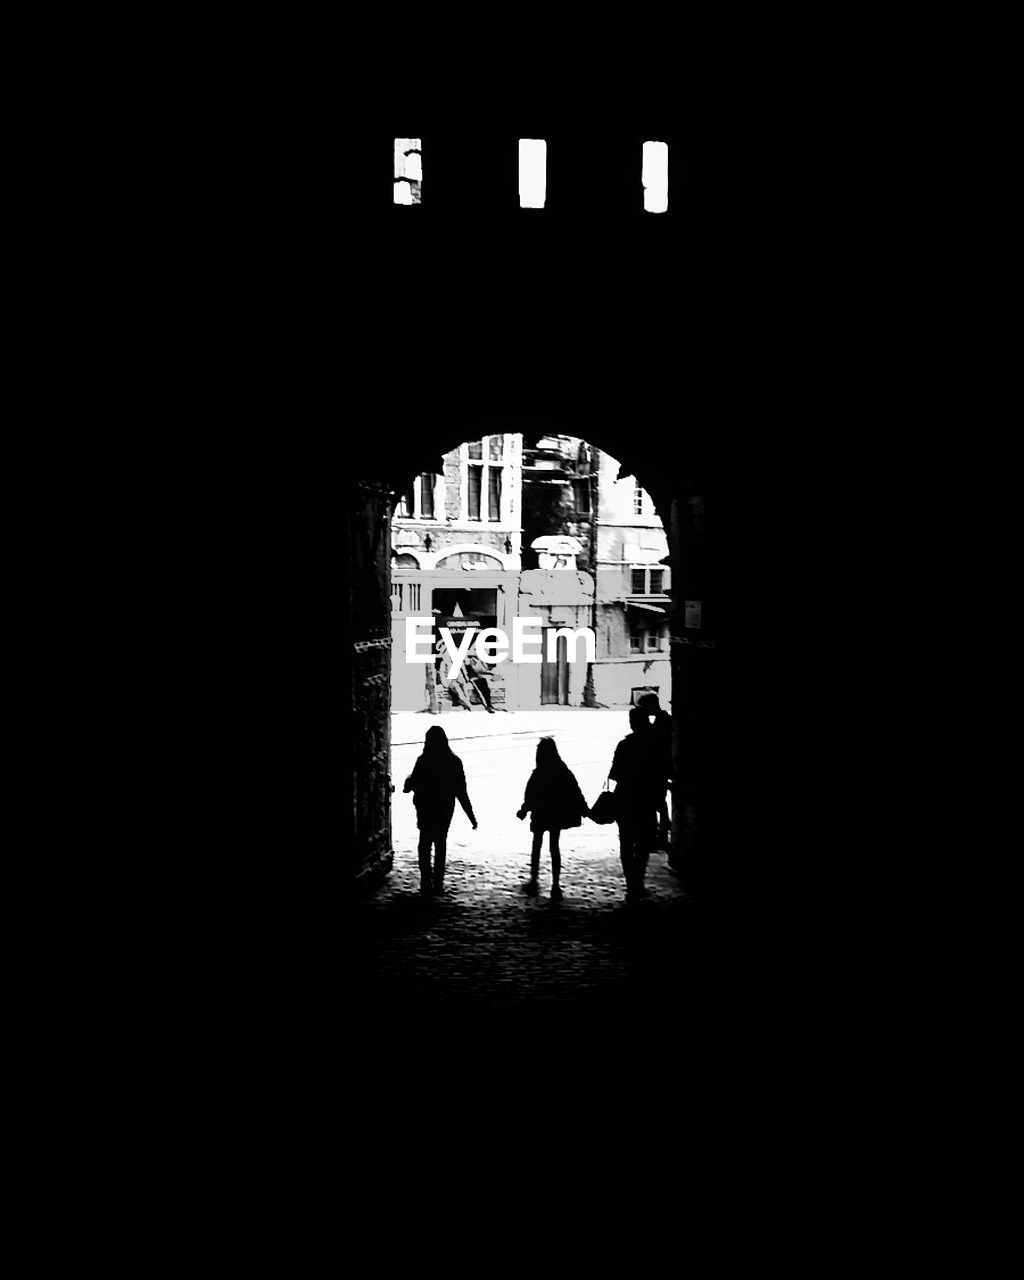 built structure, silhouette, architecture, real people, men, arch, building exterior, lifestyles, leisure activity, togetherness, walking, indoors, day, women, city, people